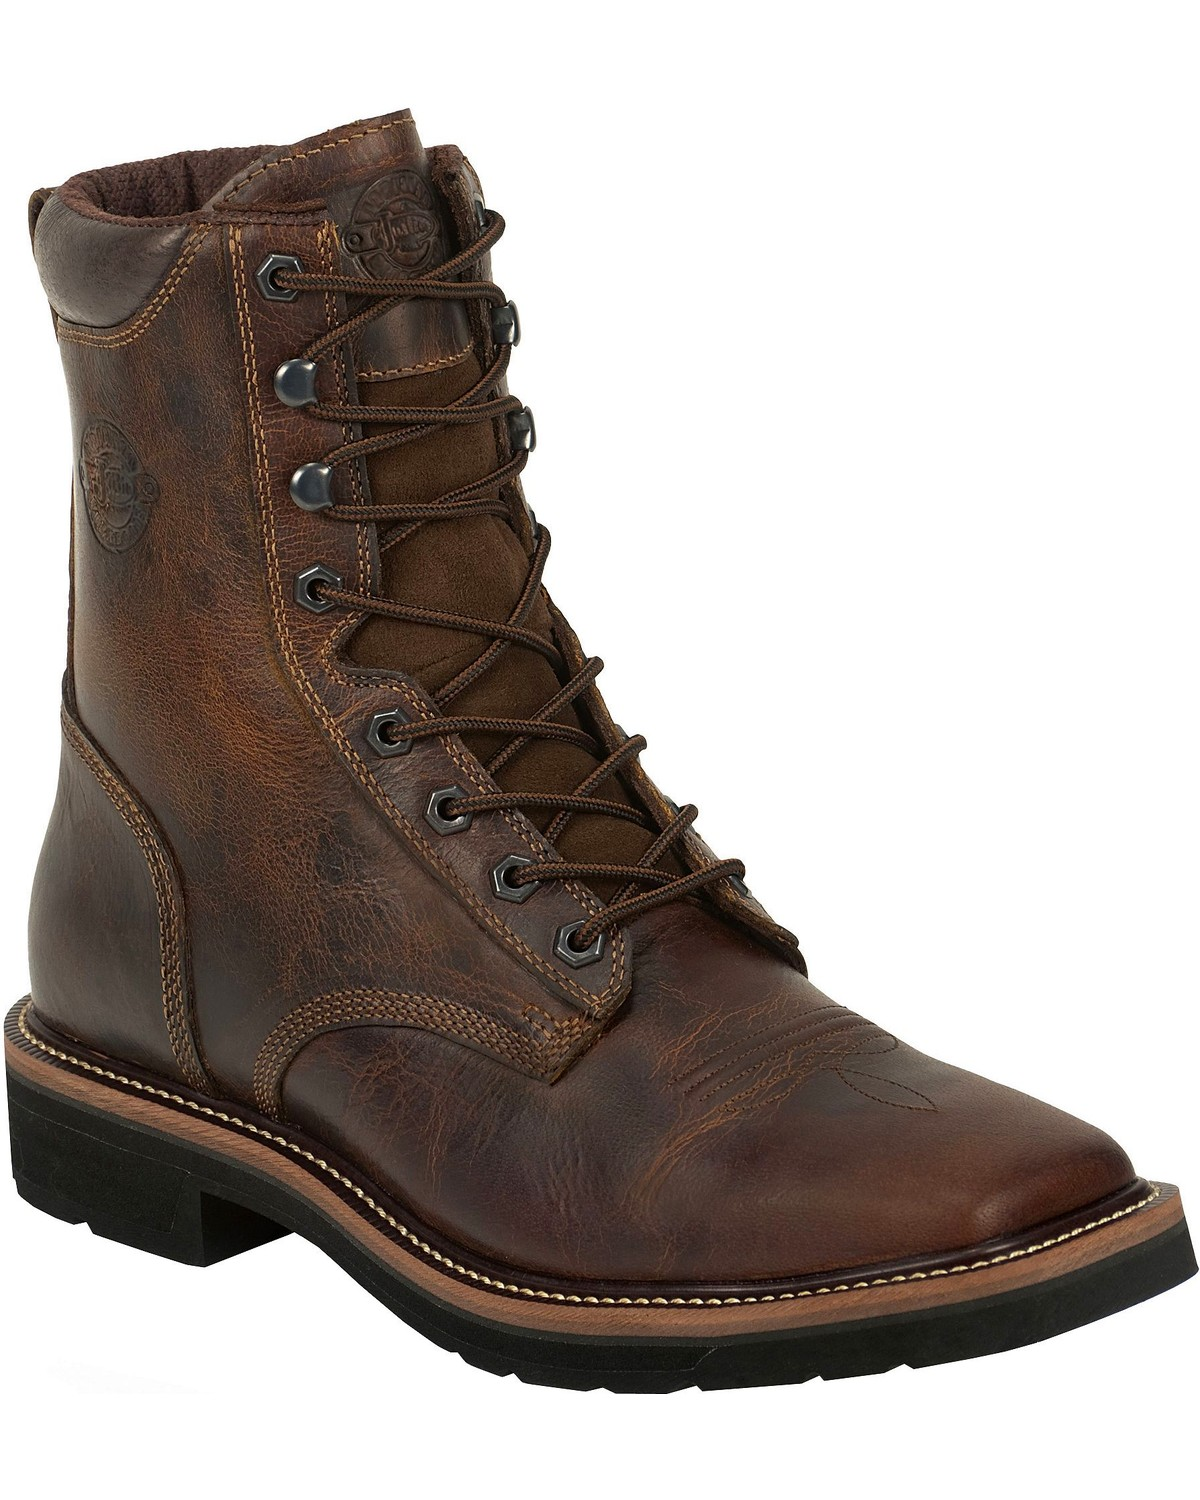 boots justin res up lace rugged stampede brands original hi mens gm workboots comforter work barn boot comfortable